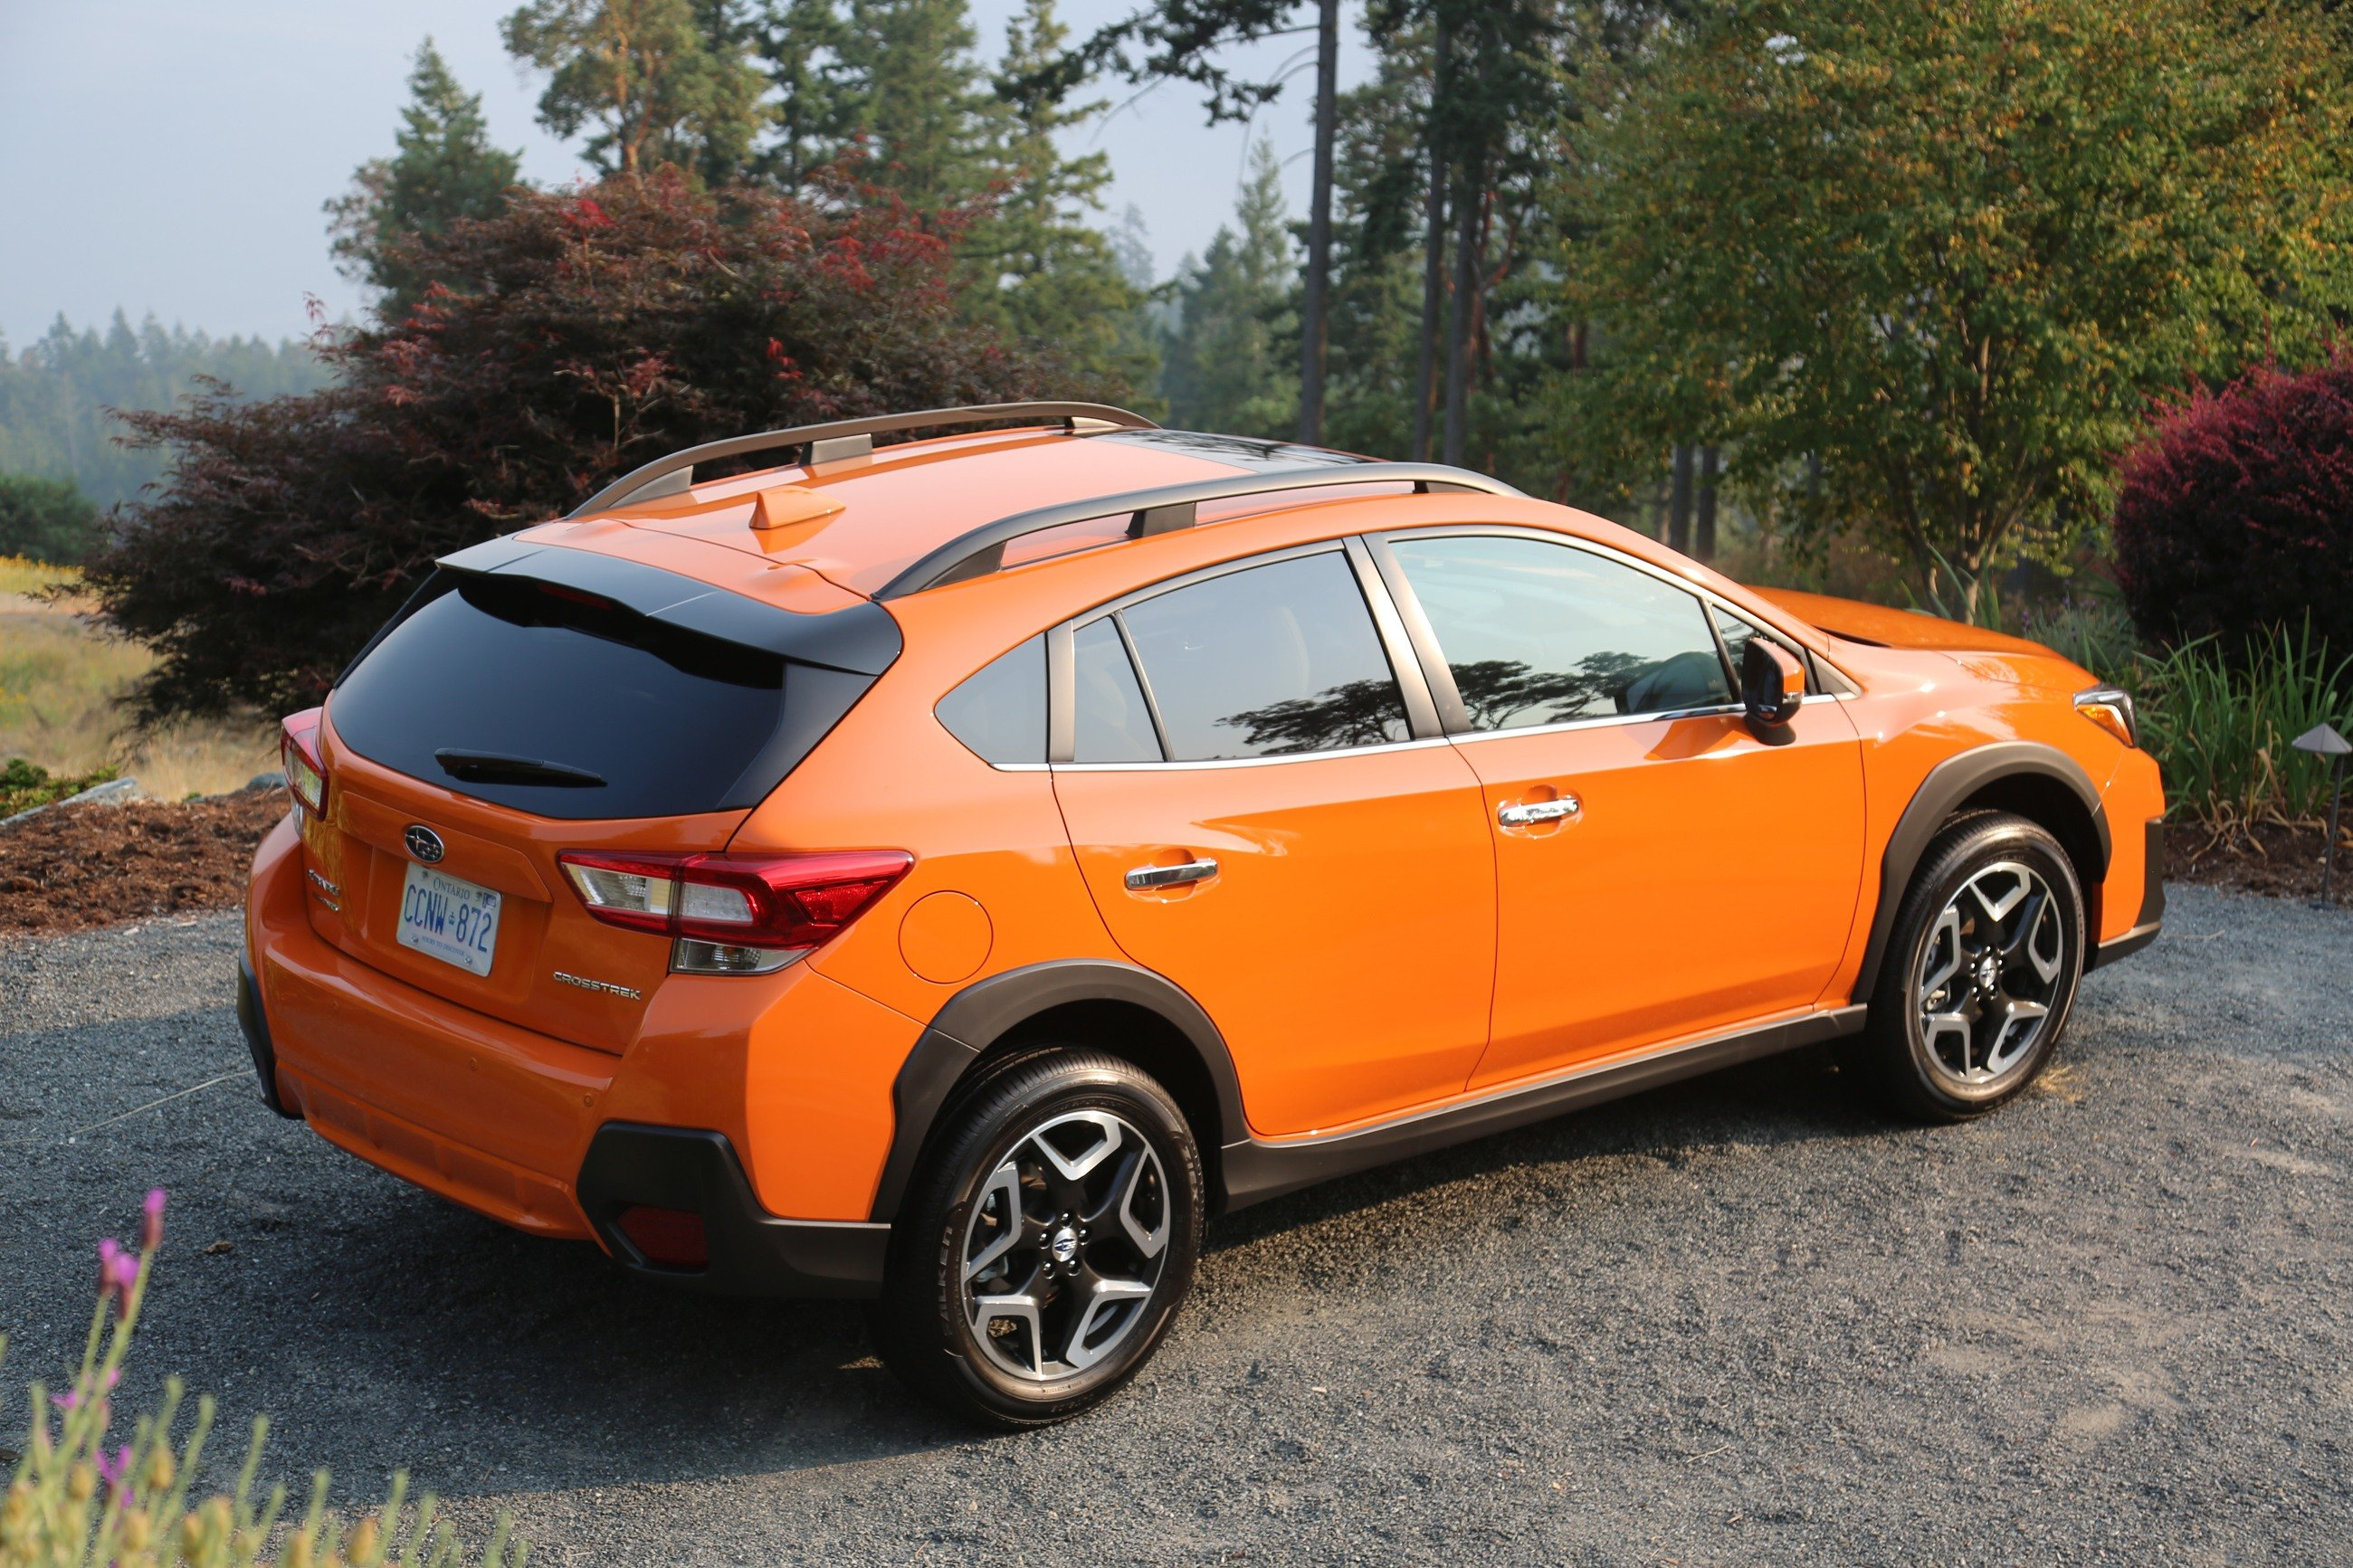 2018 Subaru Crosstrek Review - AutoGuide.com